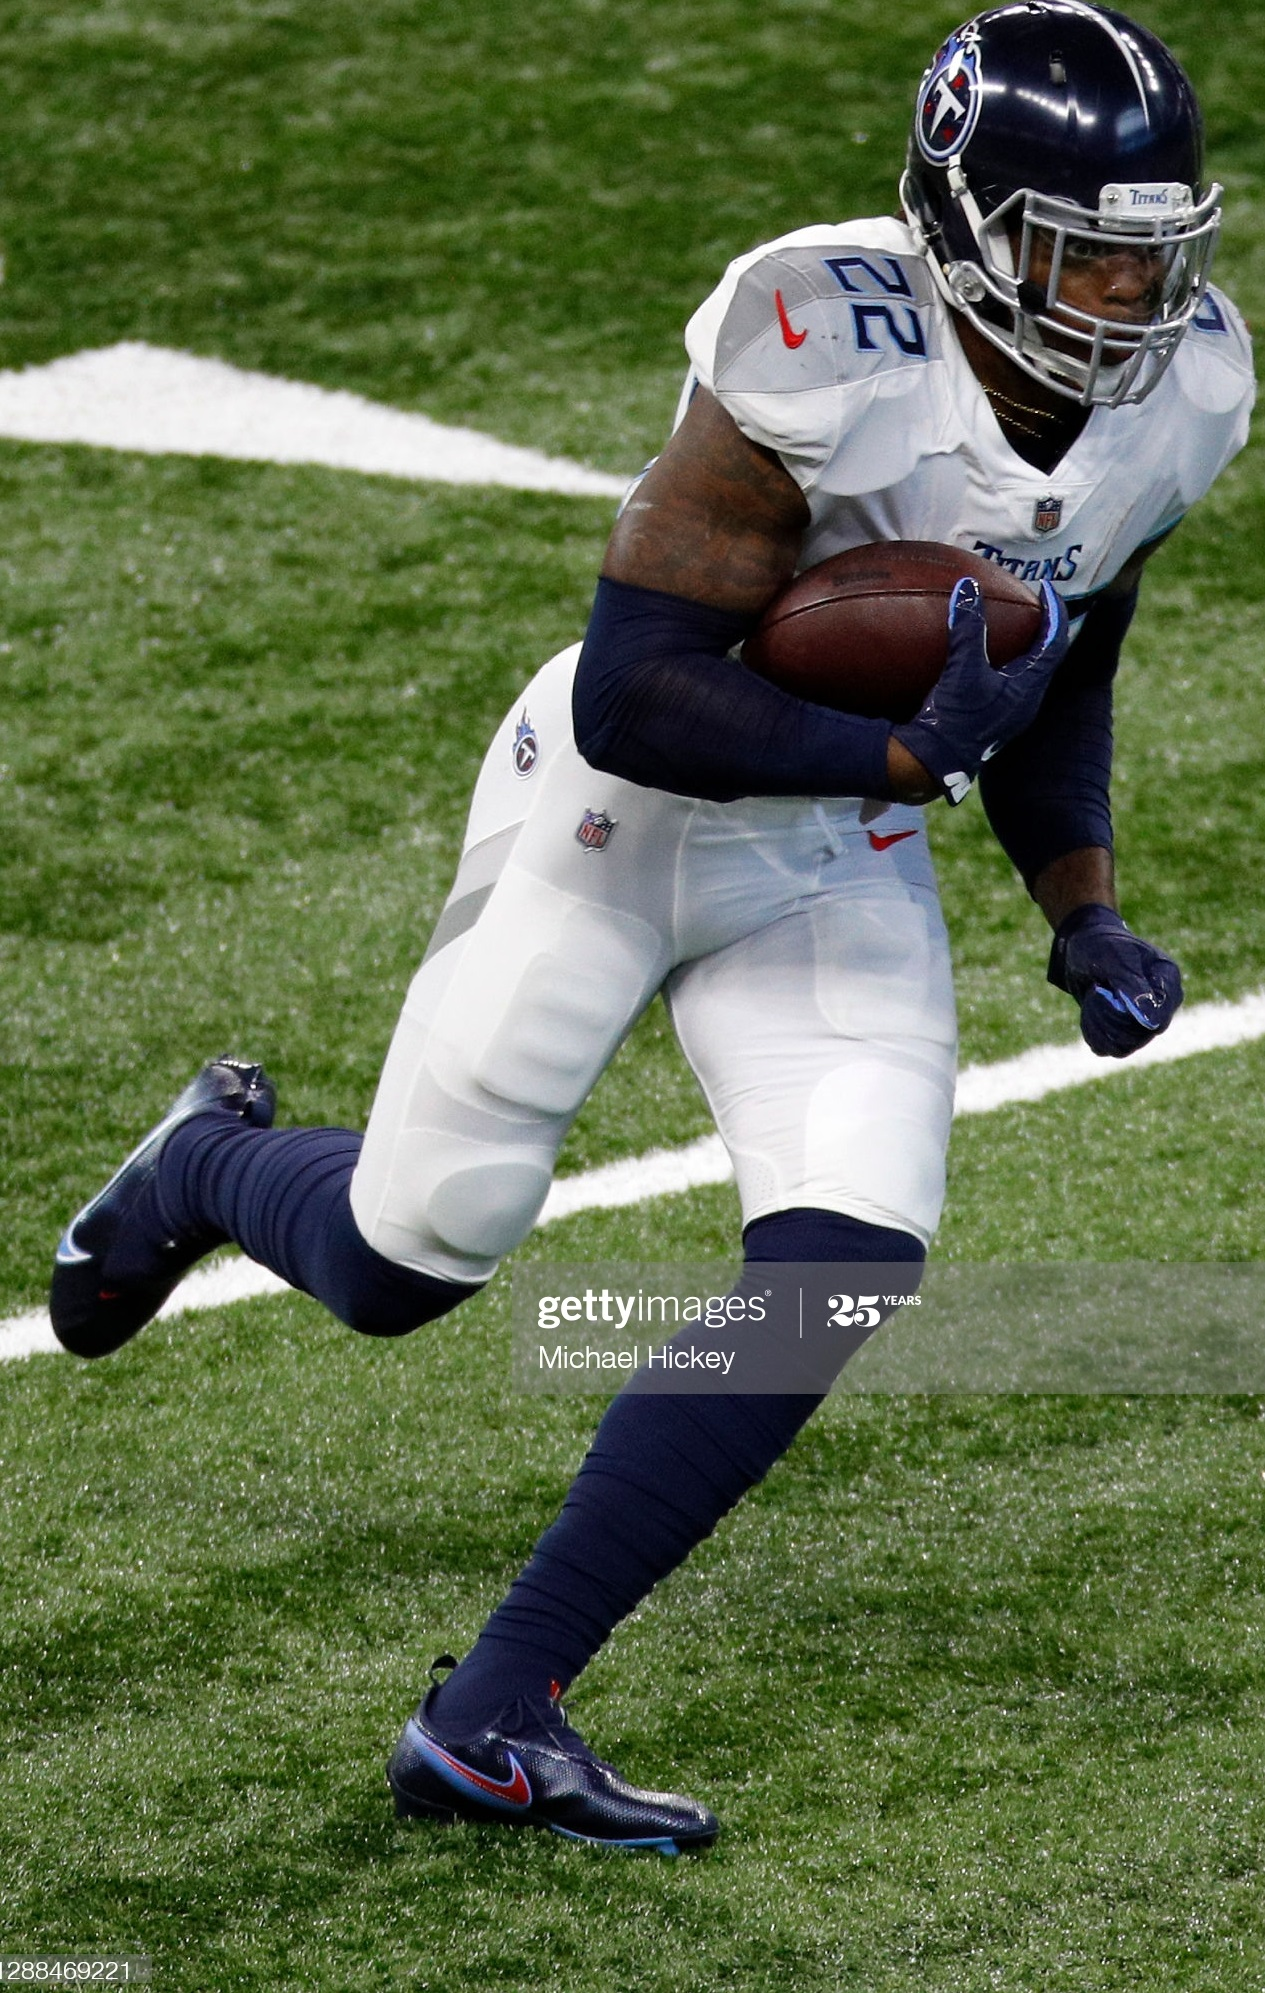 INDIANAPOLIS, INDIANA - NOVEMBER 29: Derrick Henry #22 of the Tennessee Titans carries the ball for extra yardage in the third quarter during their game against the Indianapolis Colts at Lucas Oil Stadium on November 29, 2020 in Indianapolis, Indiana. (Photo by Andy Lyons/Getty Images)